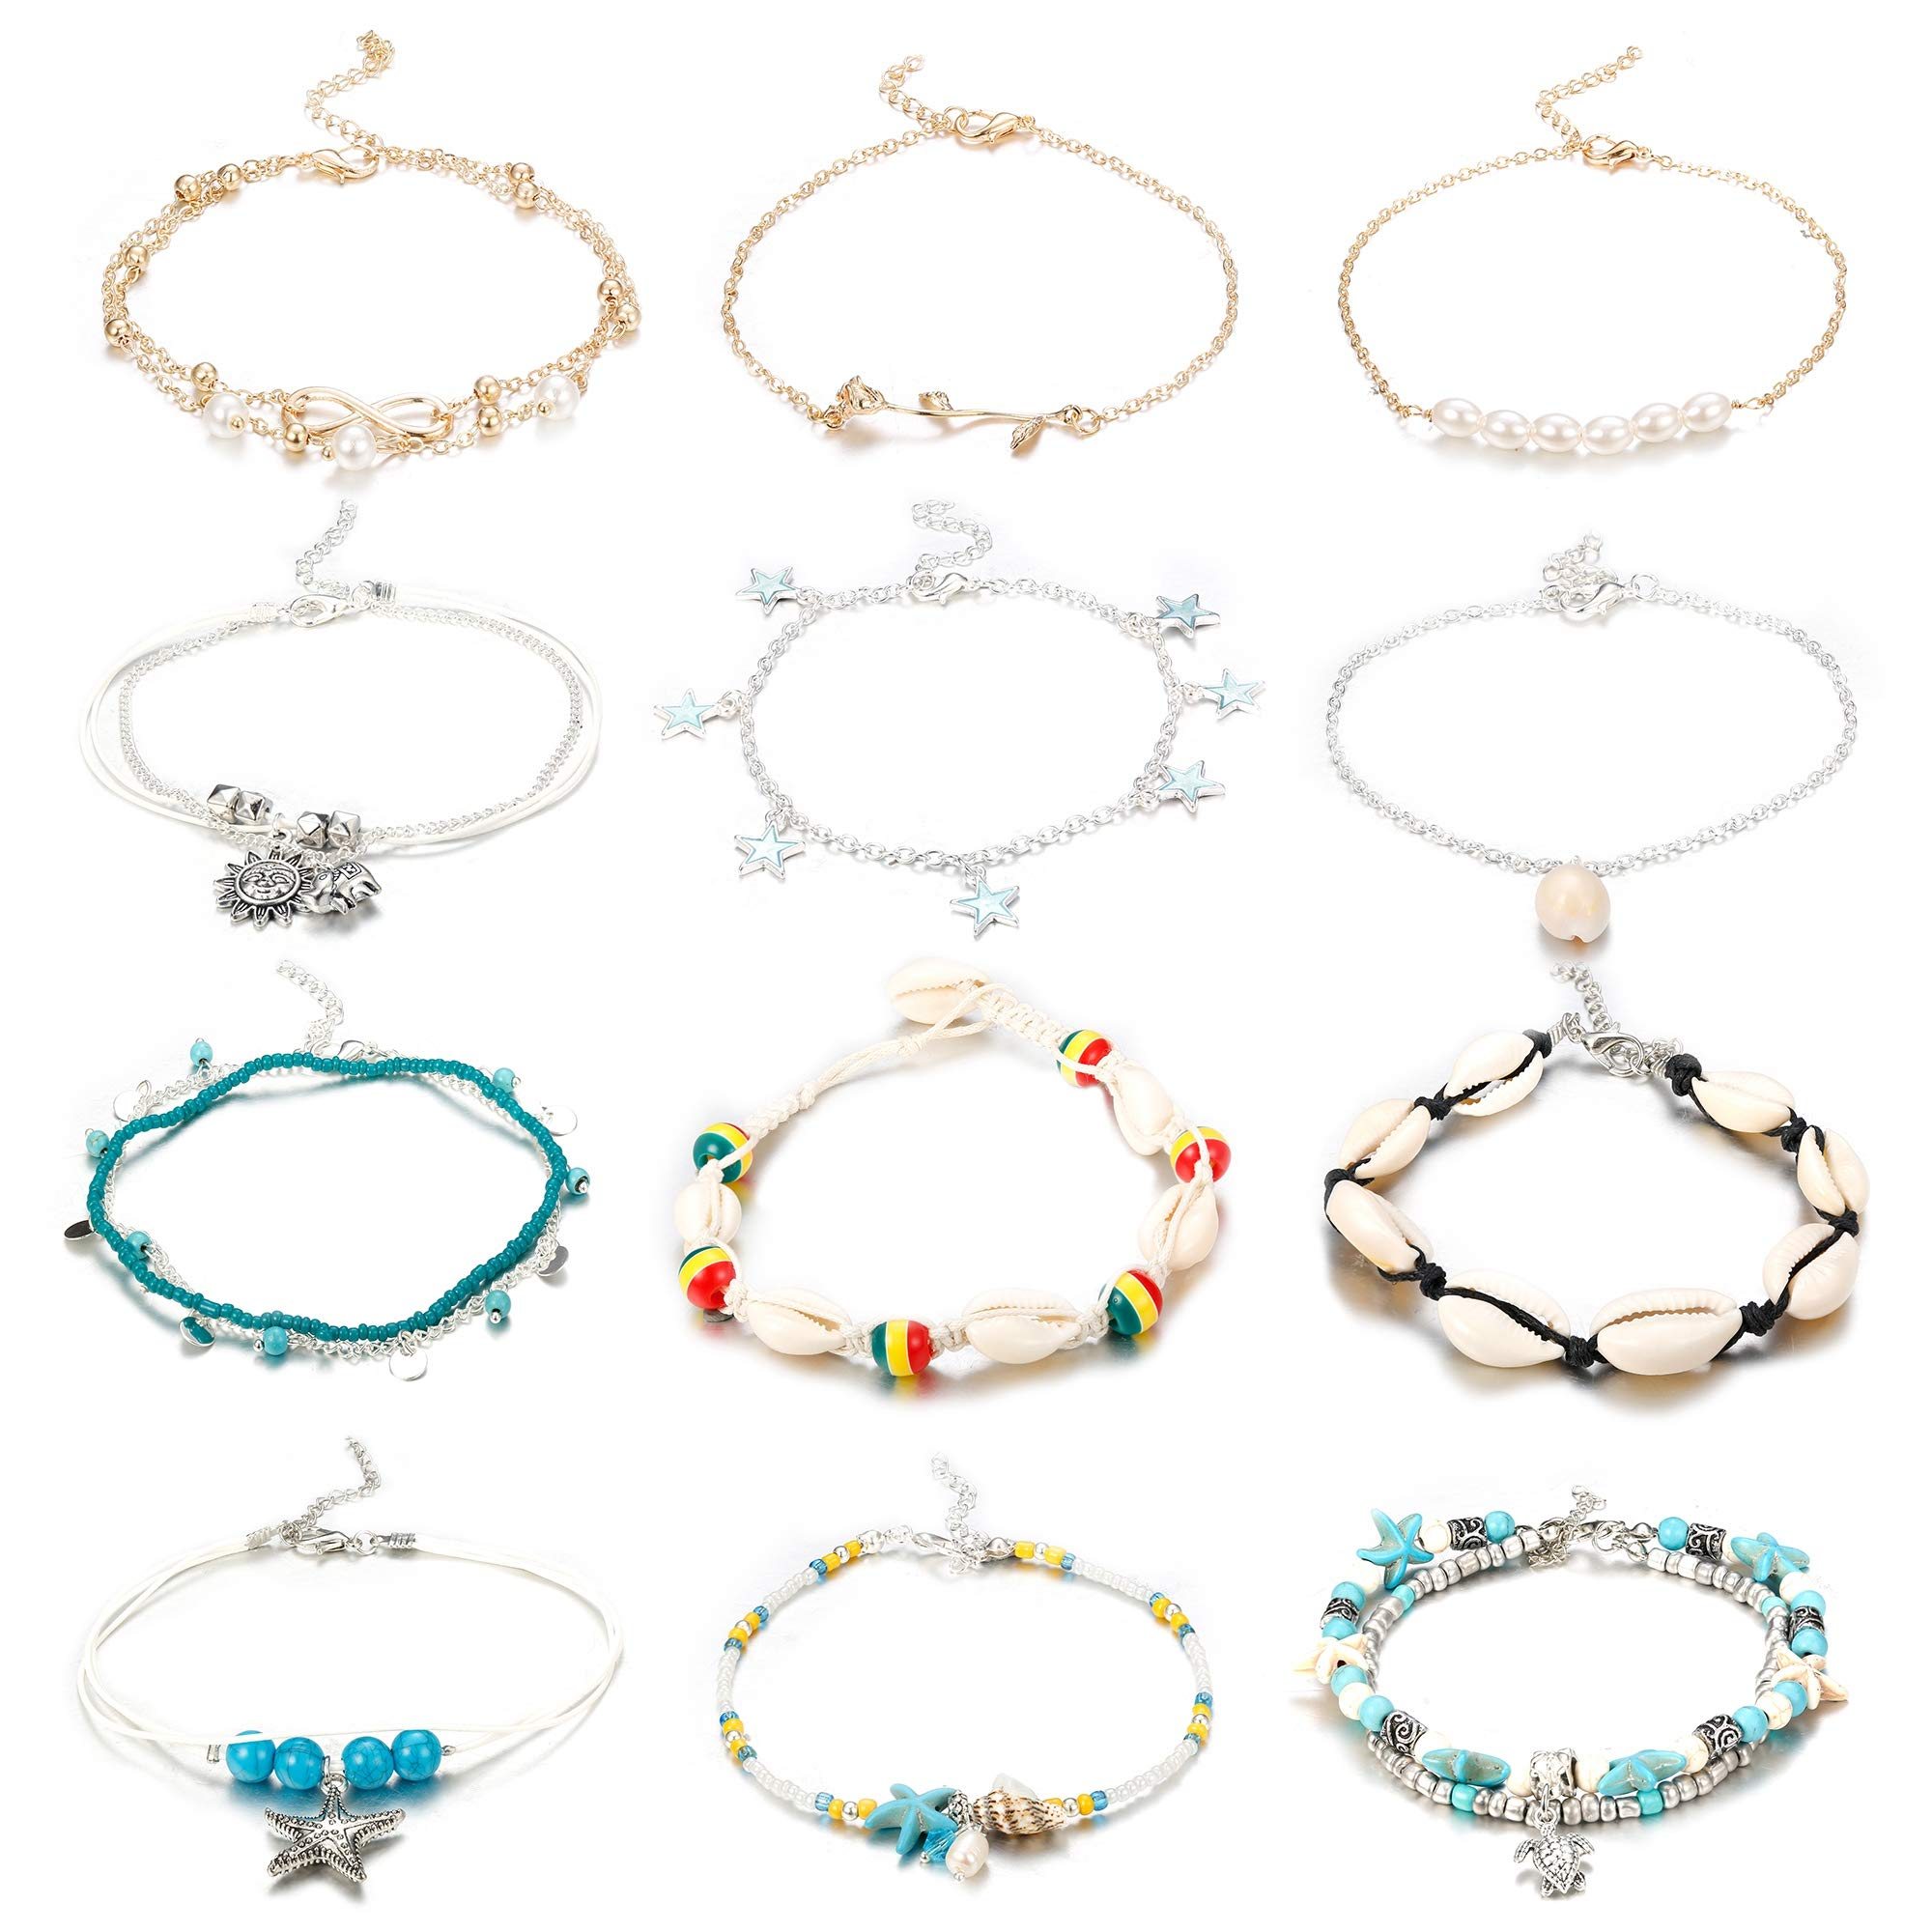 Finrezio 12PCS Anklets for Women Girls Blue Starfish Turtle Elephant Charm Ankle Bracelets Multilayer Gold Silver Plated Foot Jewelry Handmade by Finrezio